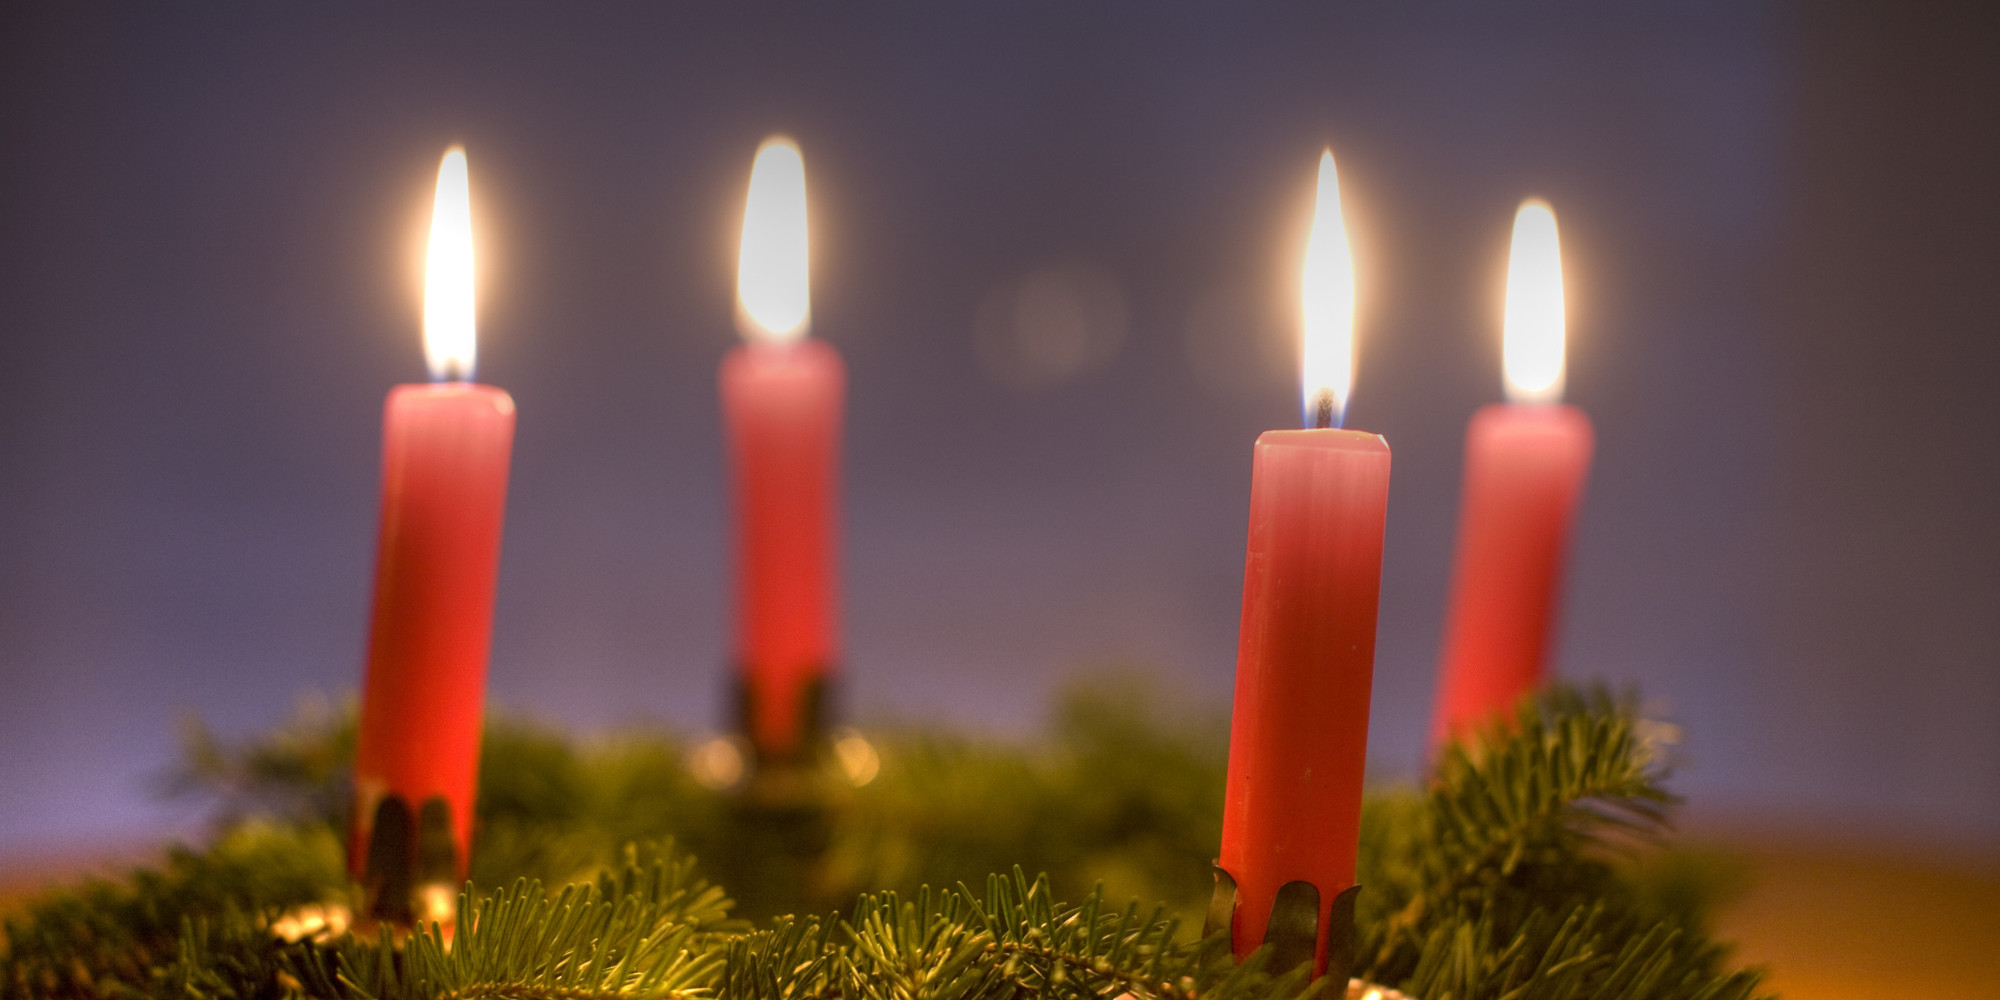 5 Ways To Make Advent More Serene And Less Stressful